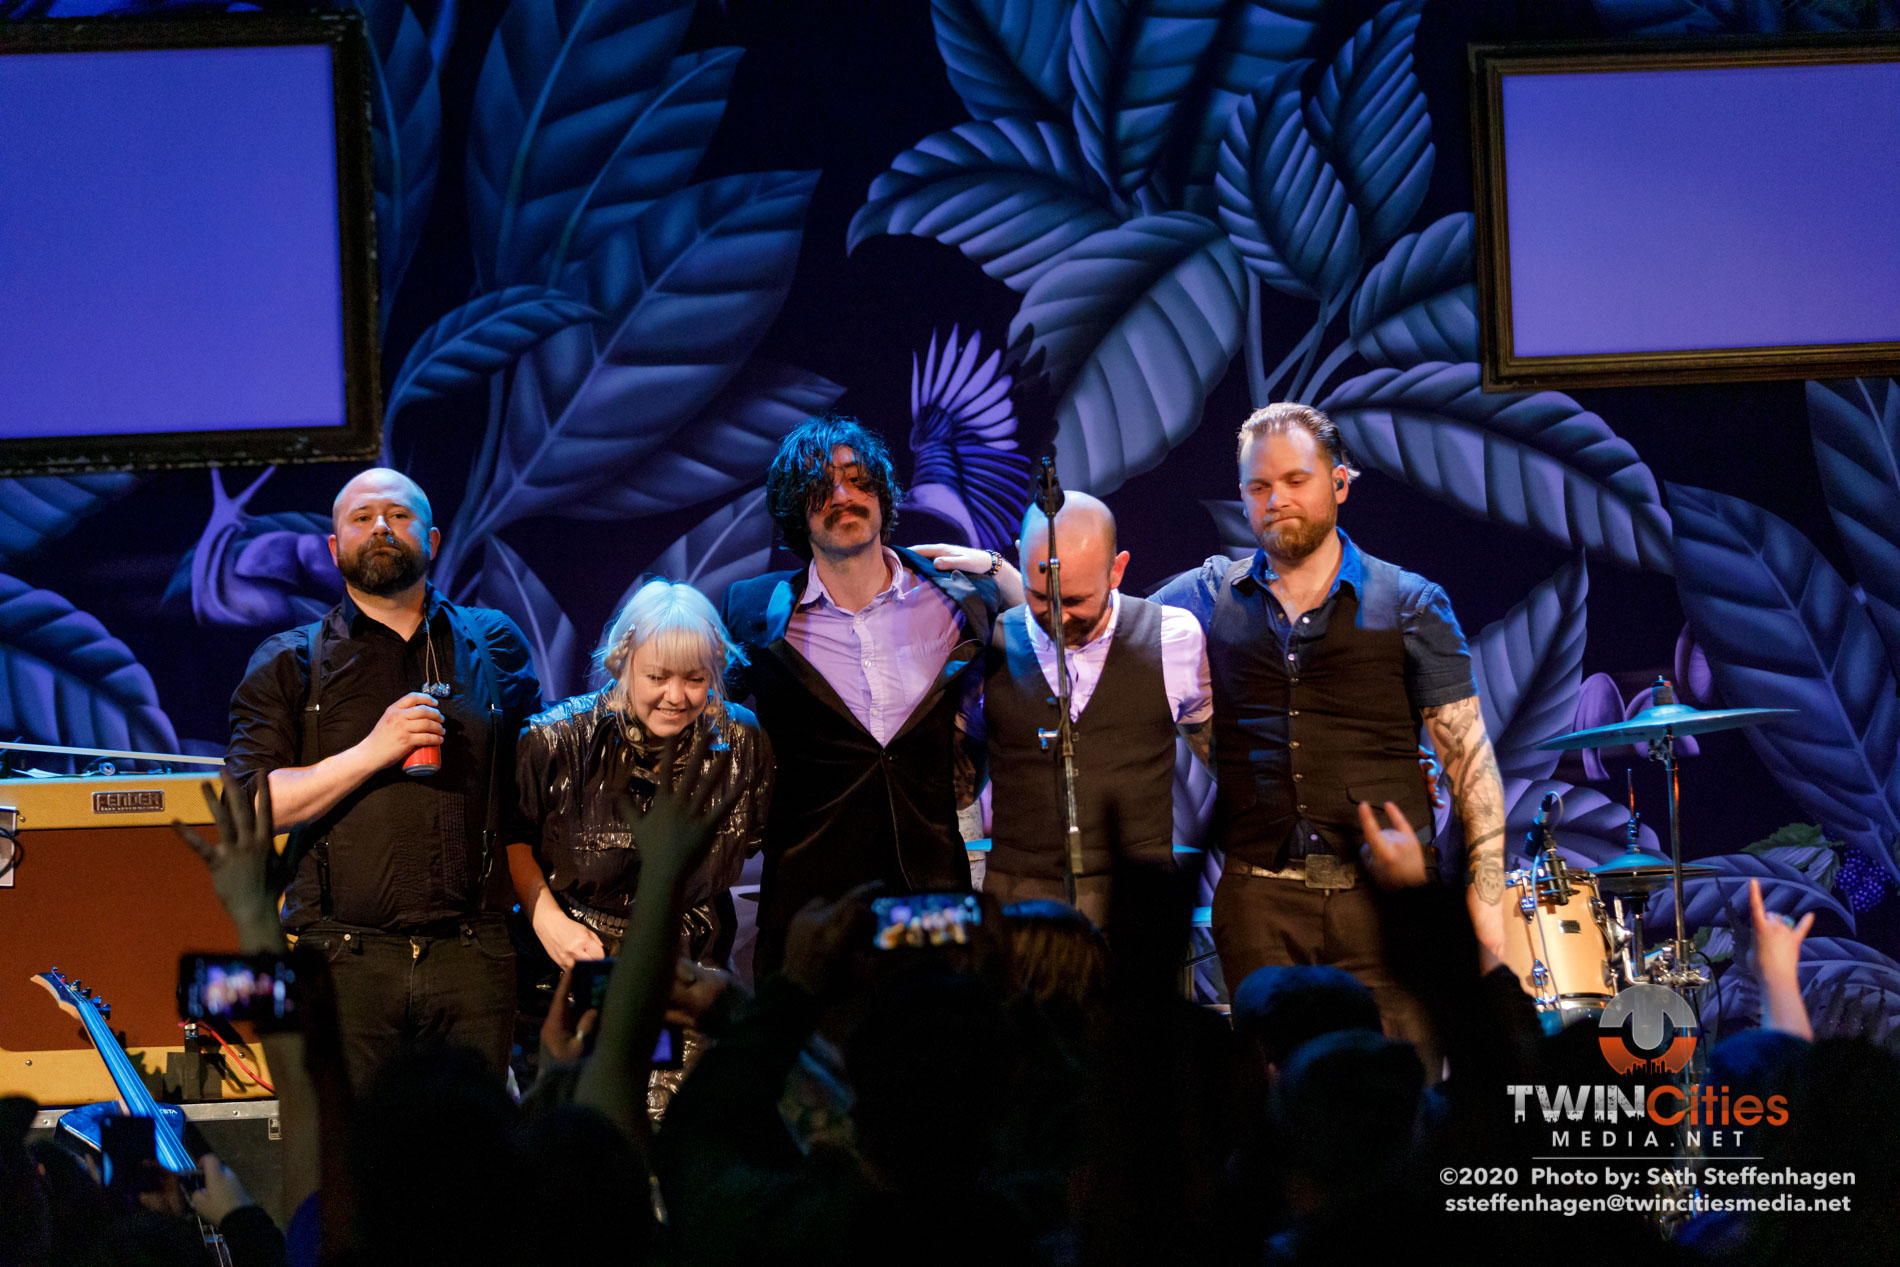 March 12, 2020 - Minneapolis, Minnesota, United States - Murder By Death live in concert at The Cedar Cultural Center along with Amigo The Devil as the opener.  (Photo by Seth Steffenhagen/Steffenhagen Photography)